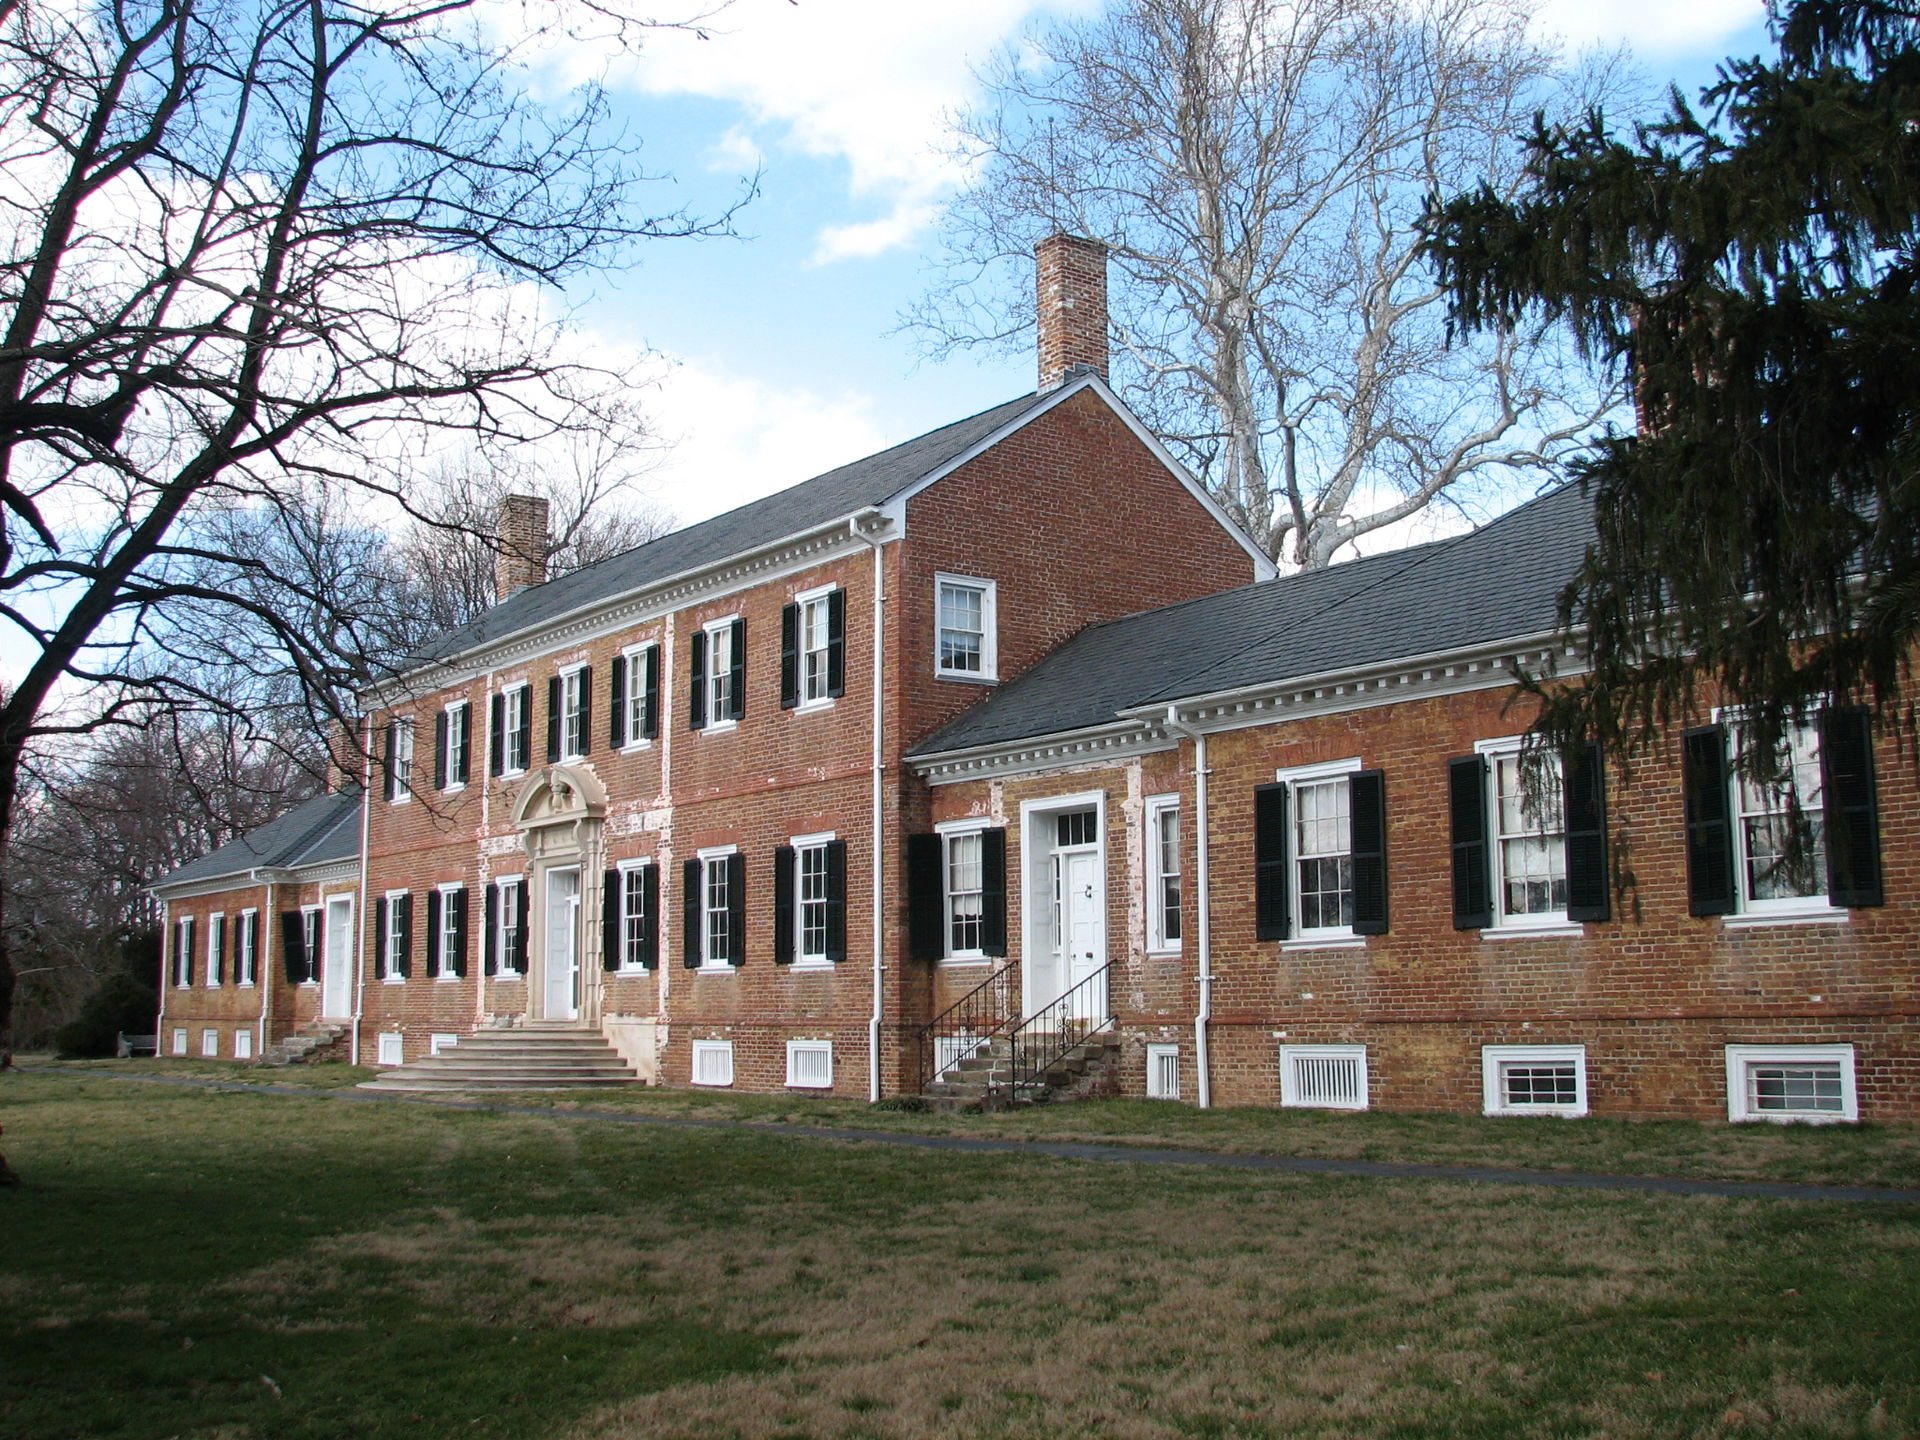 Present day Chatham Manor in Fredericksburg, VIrginia.